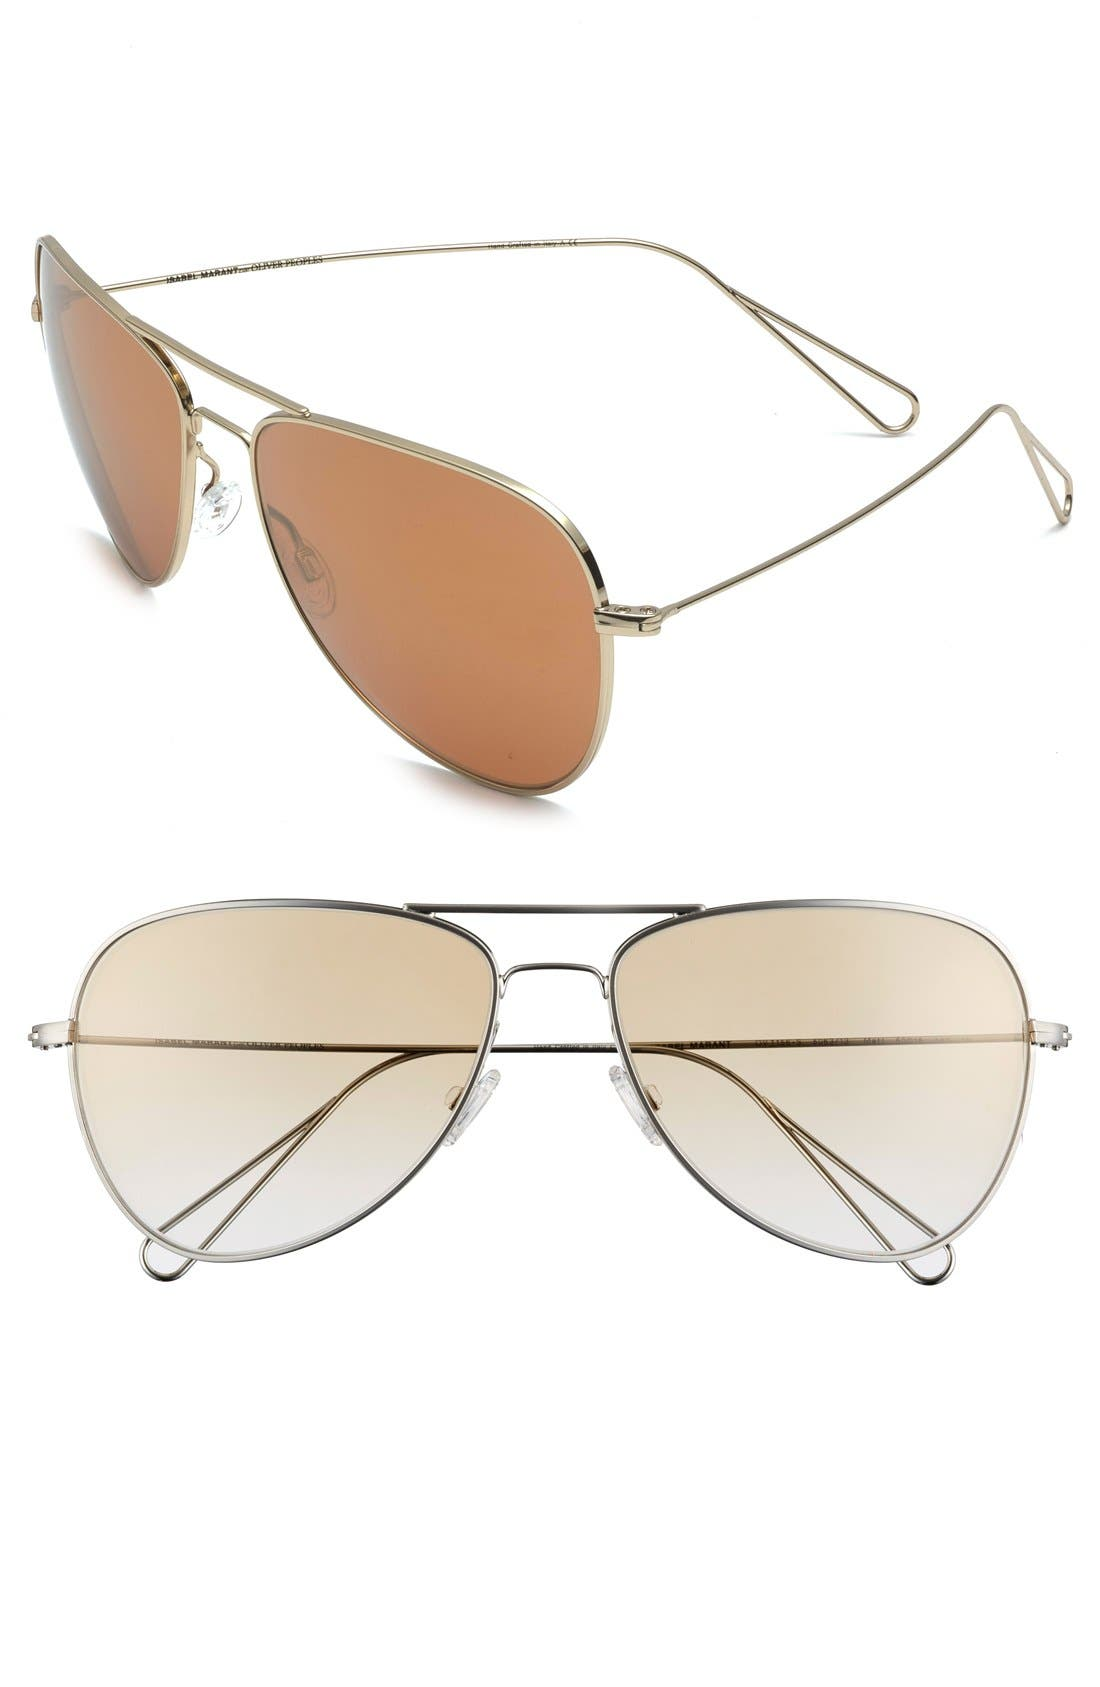 Alternate Image 1 Selected - Isabel Marant par Oliver Peoples 'Matt' 60mm Aviator Sunglasses